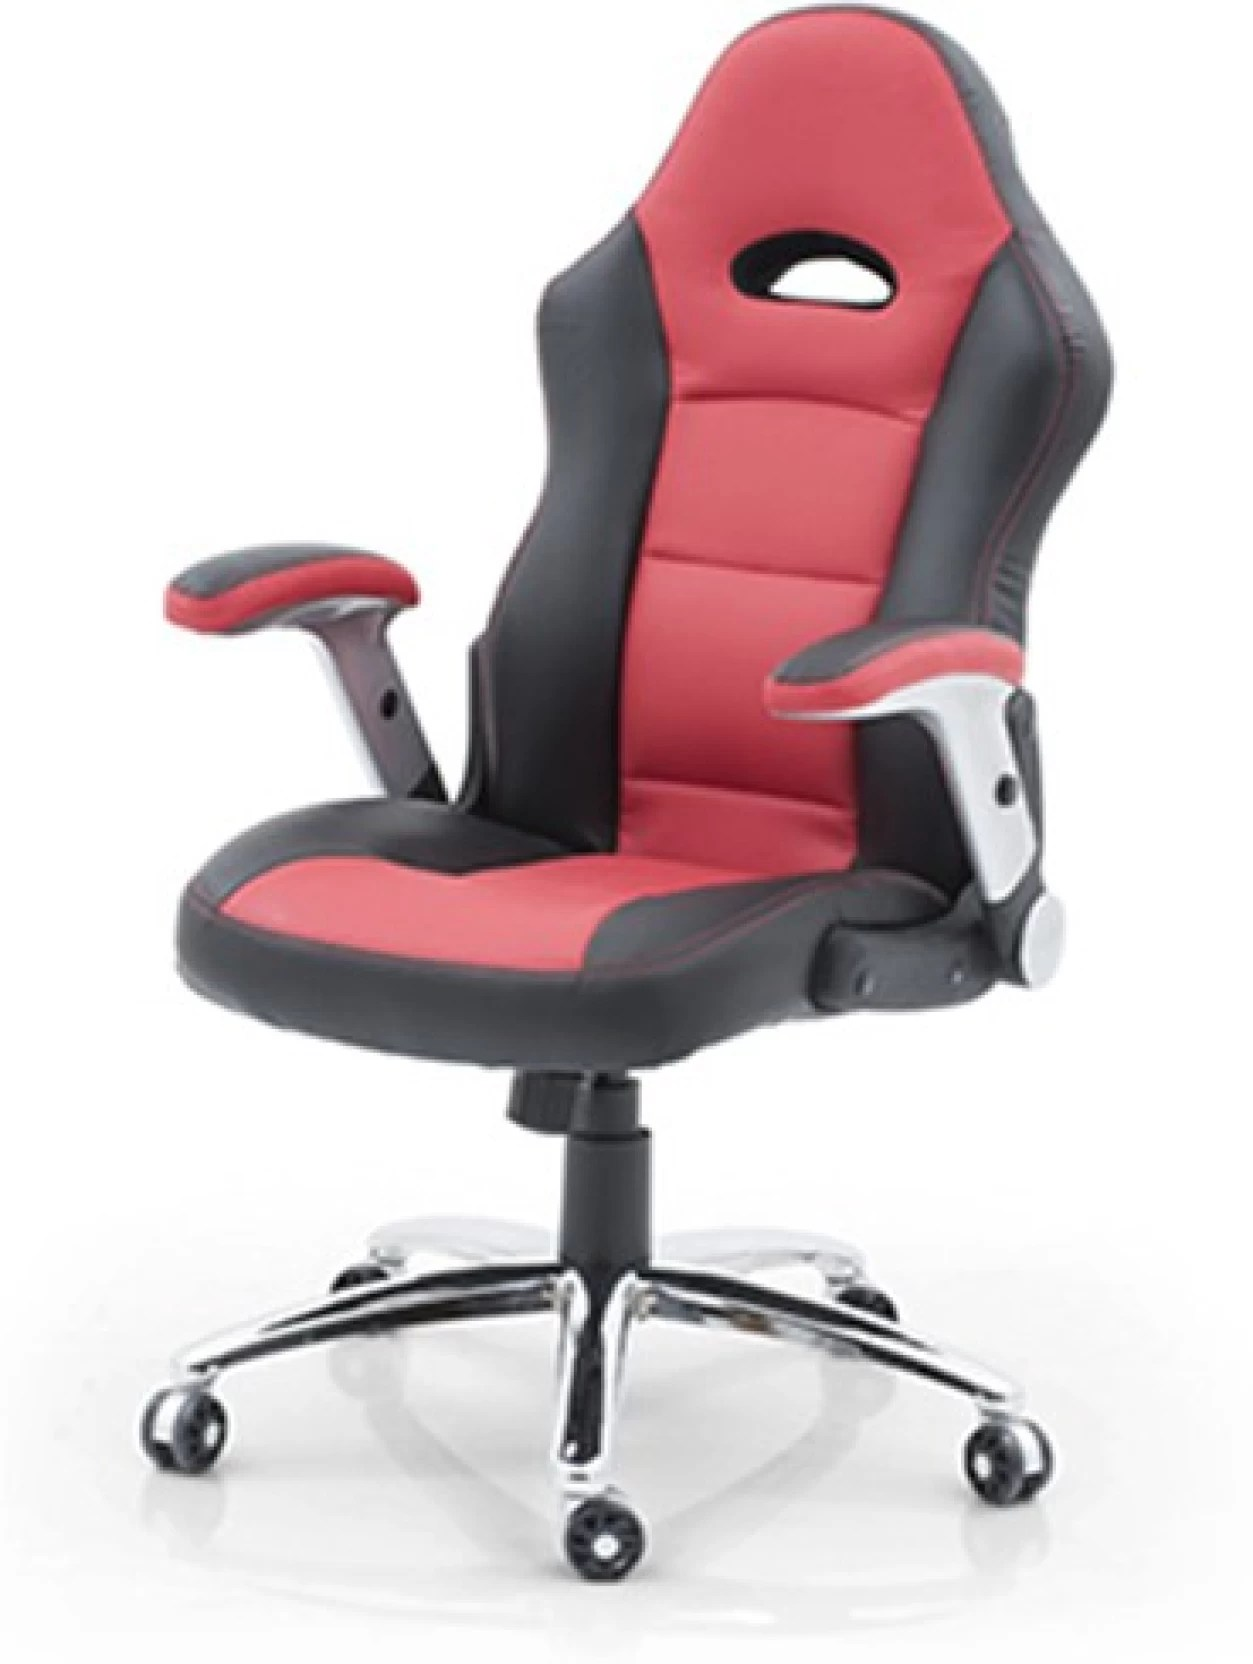 steel chair flipkart the outlet portland oregon urban ladder mika leatherette office arm price in